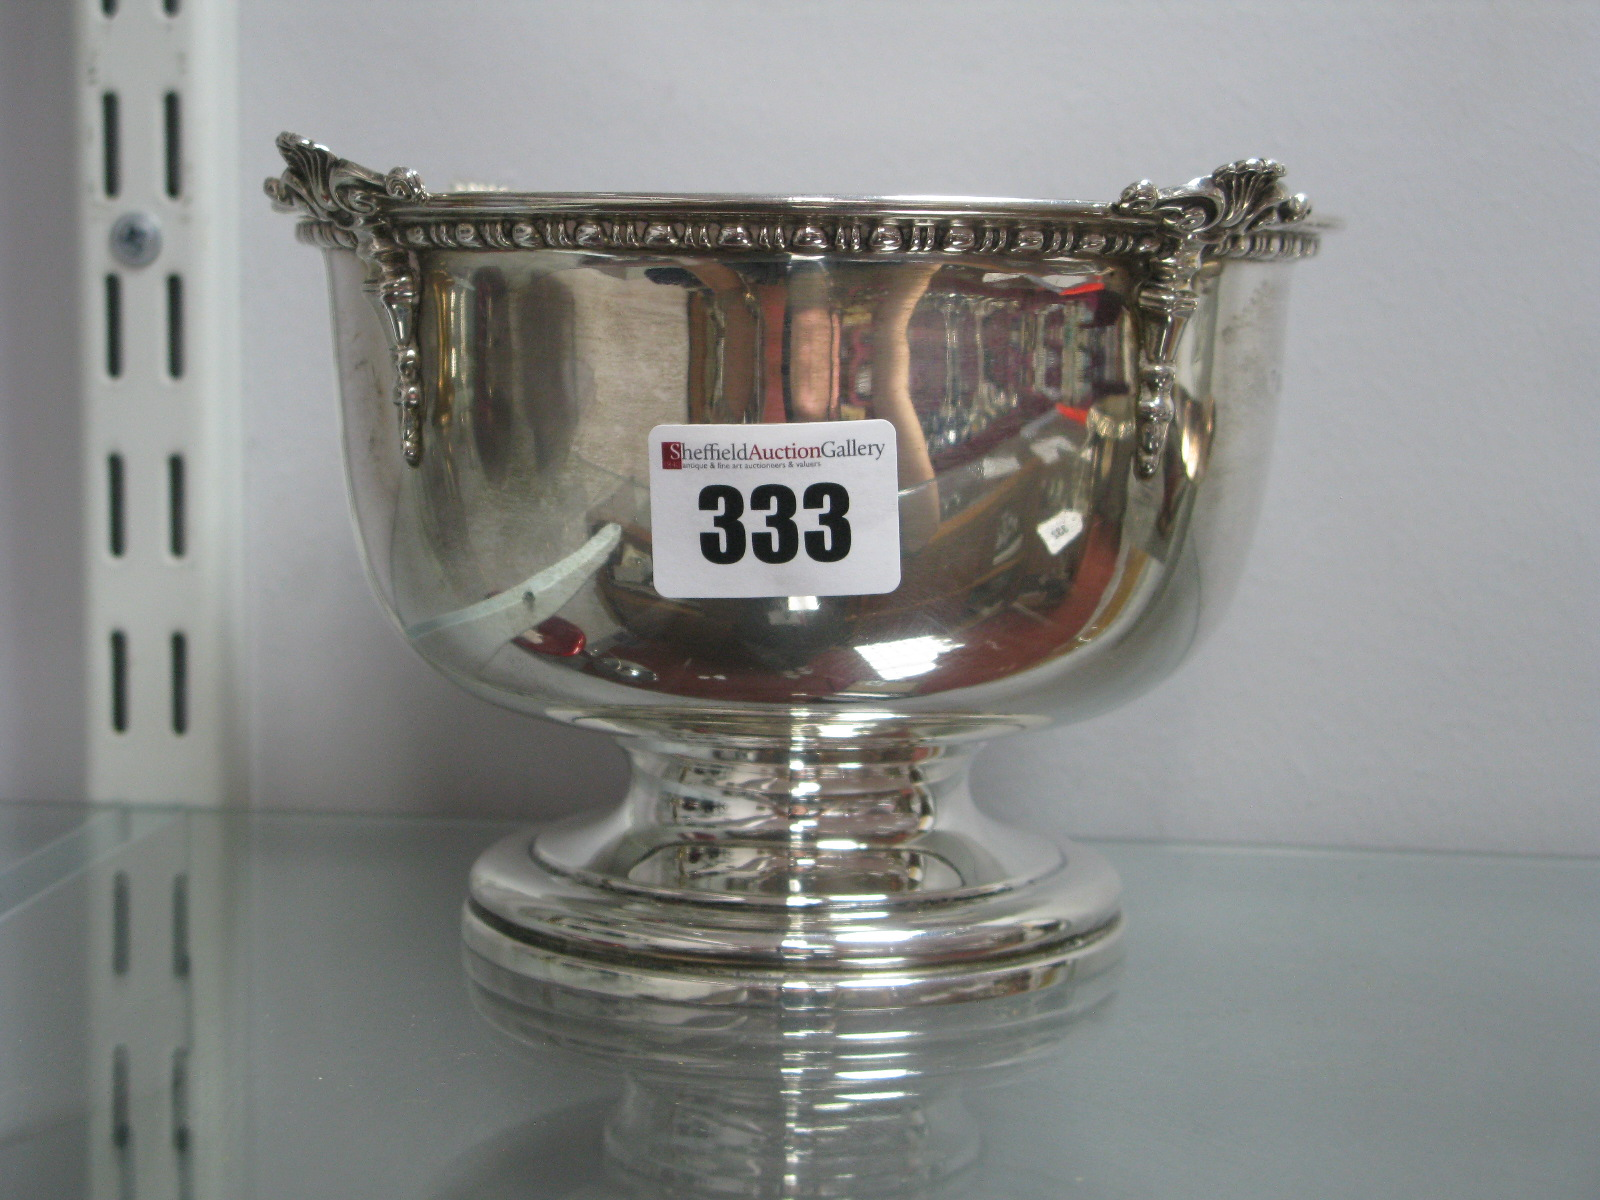 Lot 333 - A Hallmarked Silver Footed Bowl, with reed and reel border, 15.2cm diameter, Birmingham 1922.